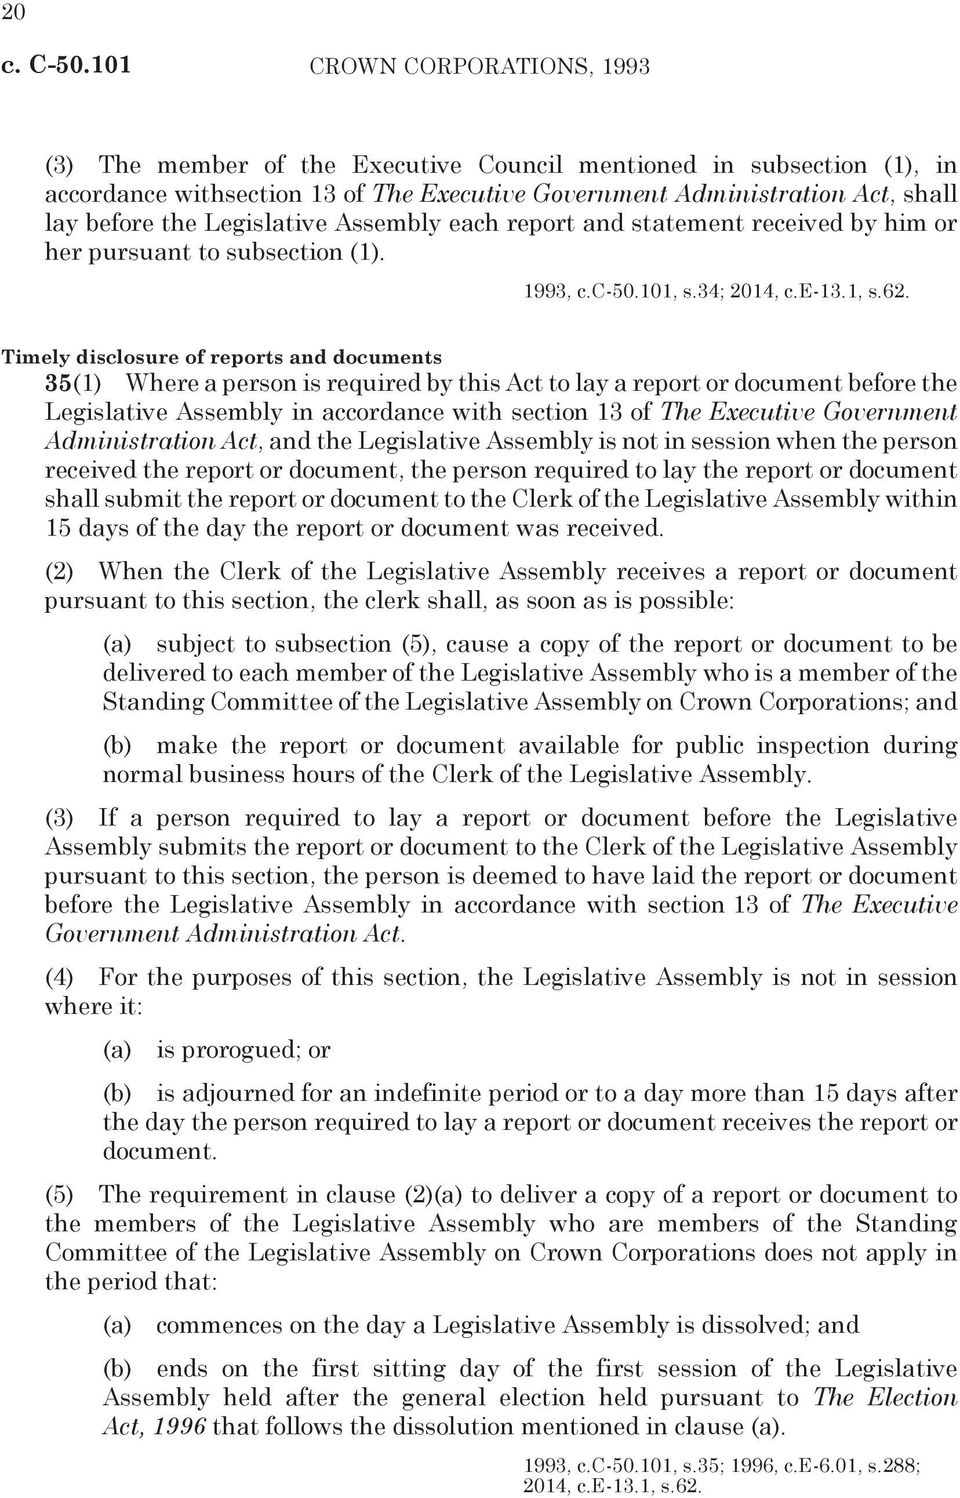 Timely disclosure of reports and documents 35(1) Where a person is required by this Act to lay a report or document before the Legislative Assembly in accordance with section 13 of The Executive